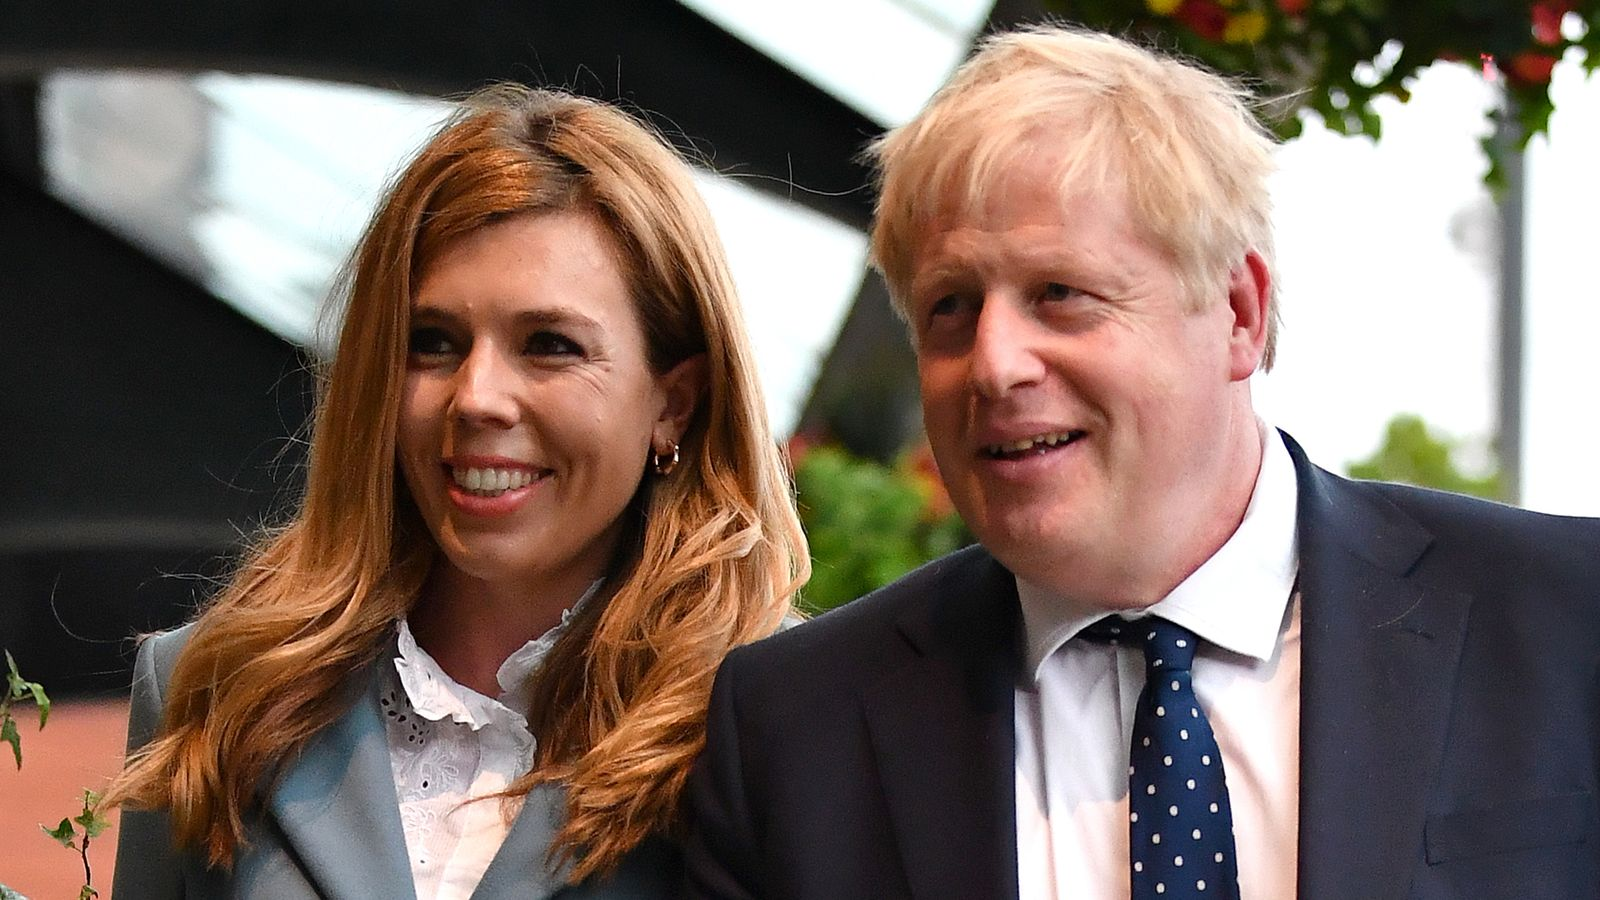 Coronavirus: 'Agony' of Boris Johnson's pregnant fiancee Carrie Symonds as couple kept apart - Sky News